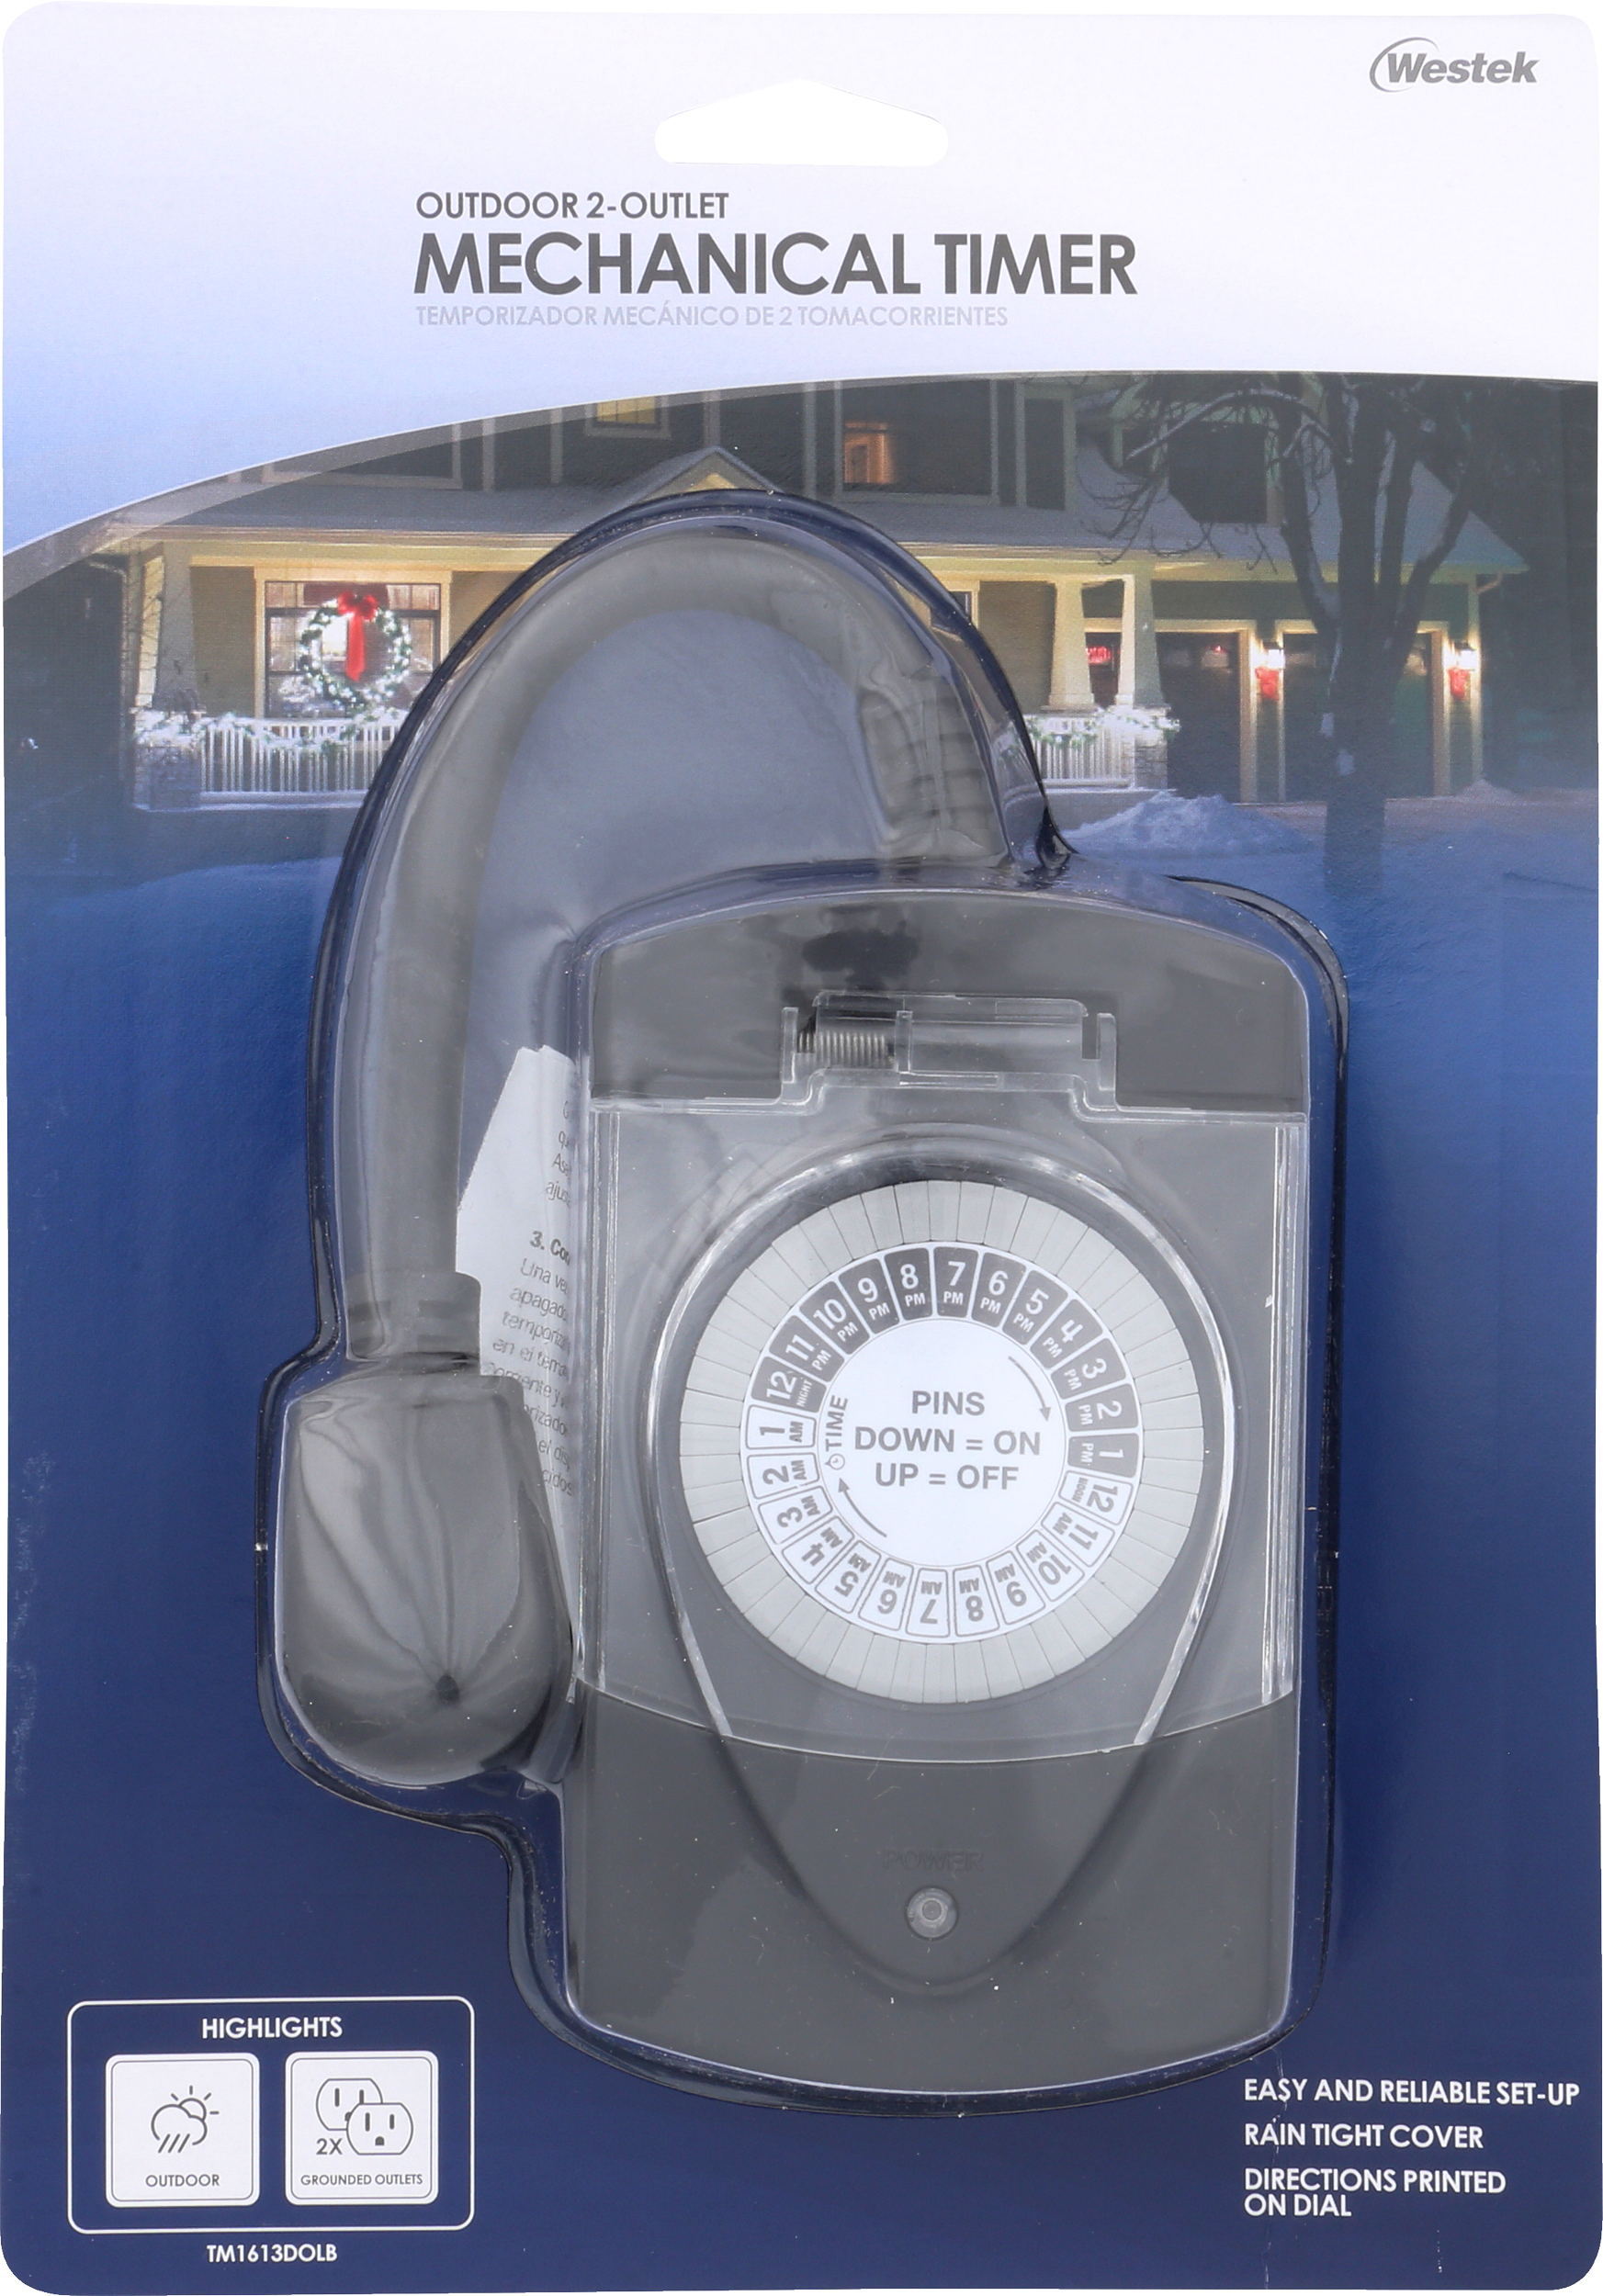 Outdoor Mechanical Timer 2-Outlet Grounded | TM1613